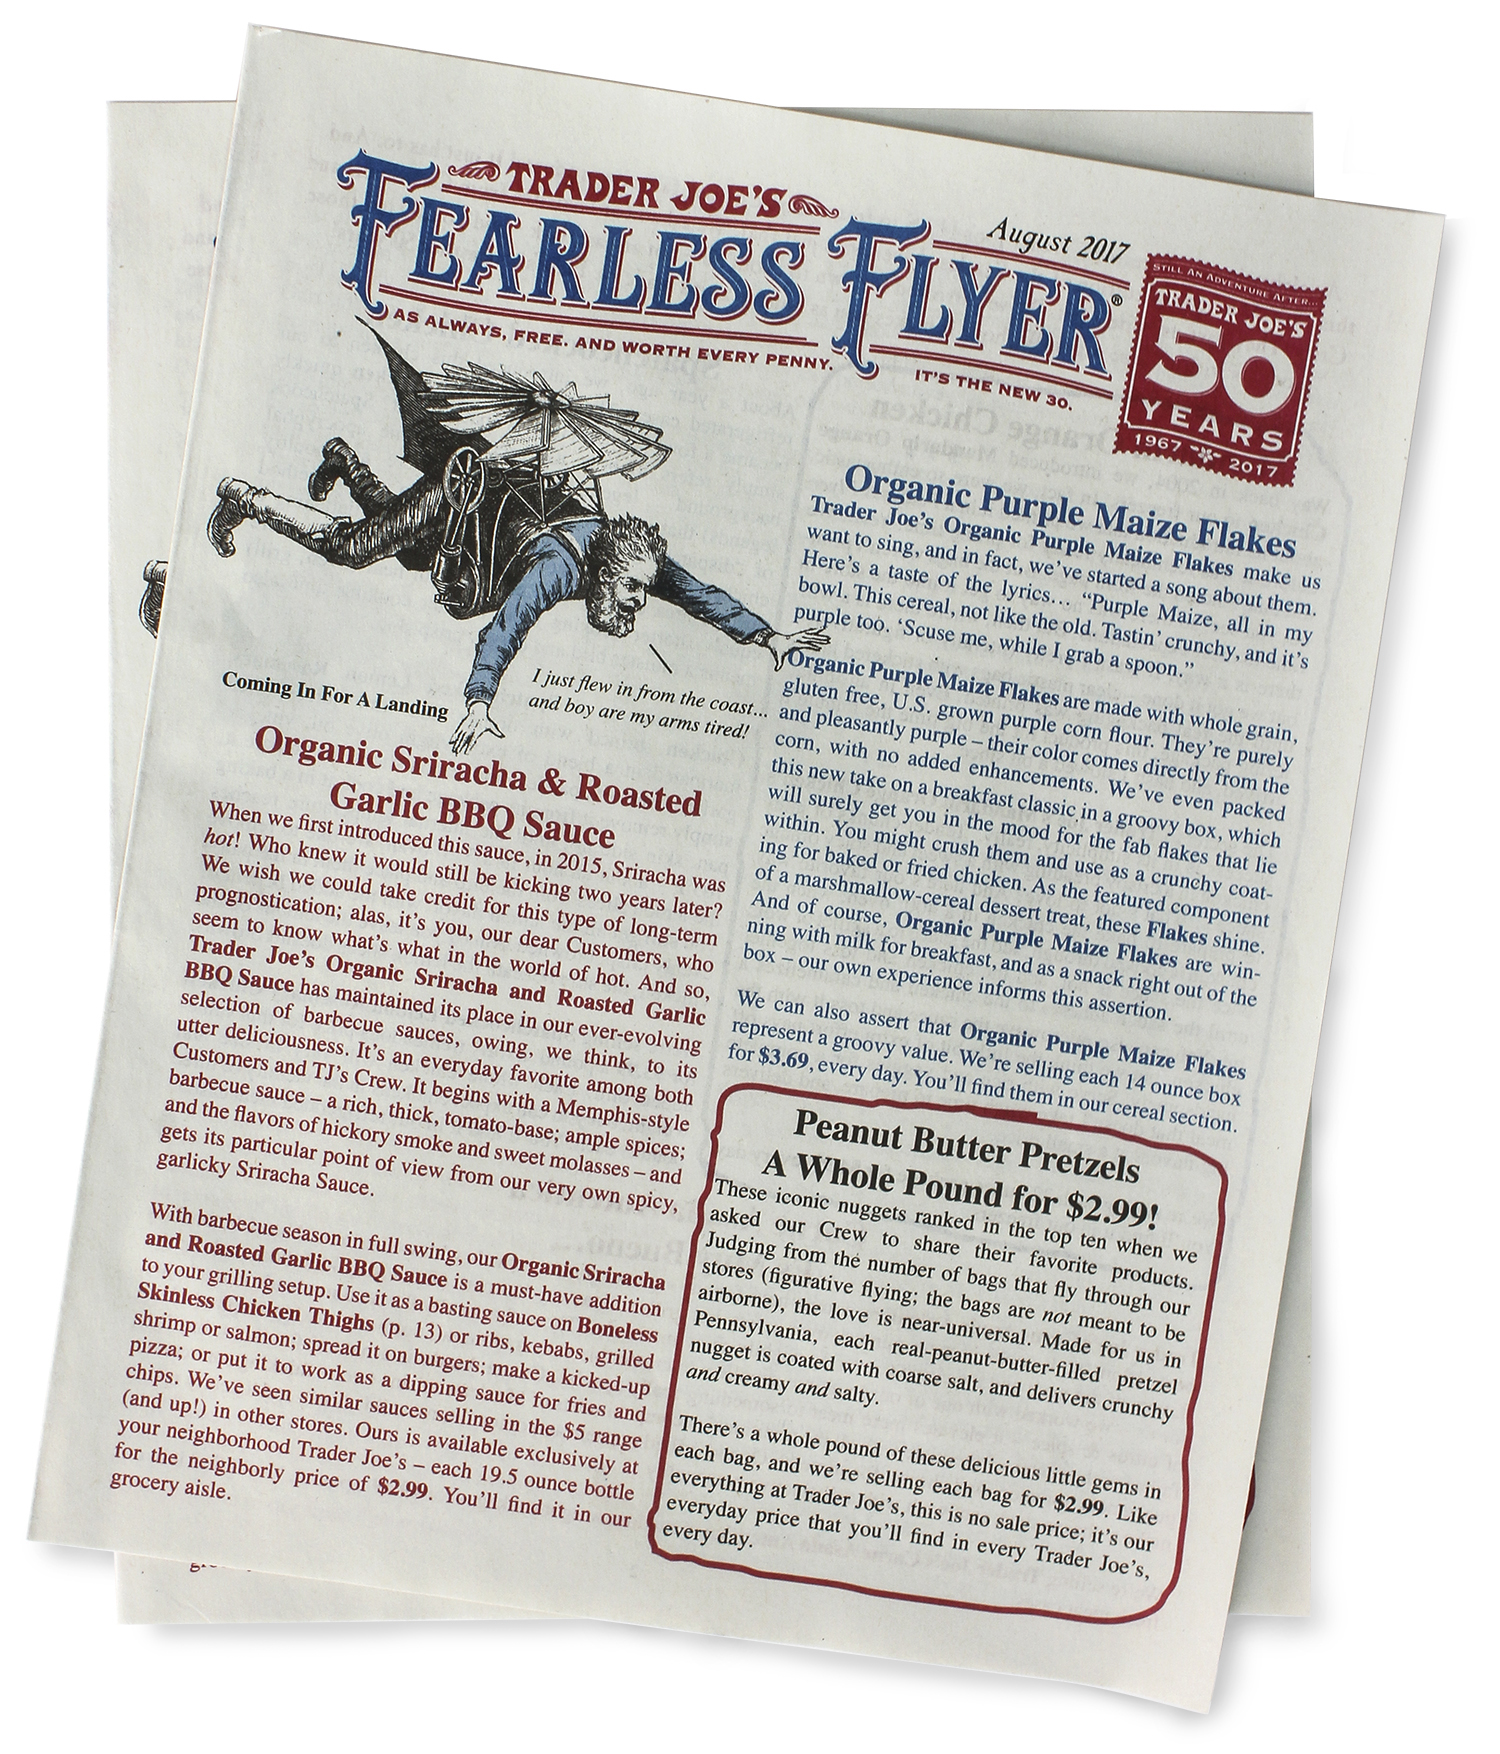 Affordable Serving By Newswire Trader Joe S Fearless Flyer April 2018 Trader Joe S Flyer September 2018 Trader Joe S Flyer Trader Joes Celebrates Years nice food Trader Joes Flyer